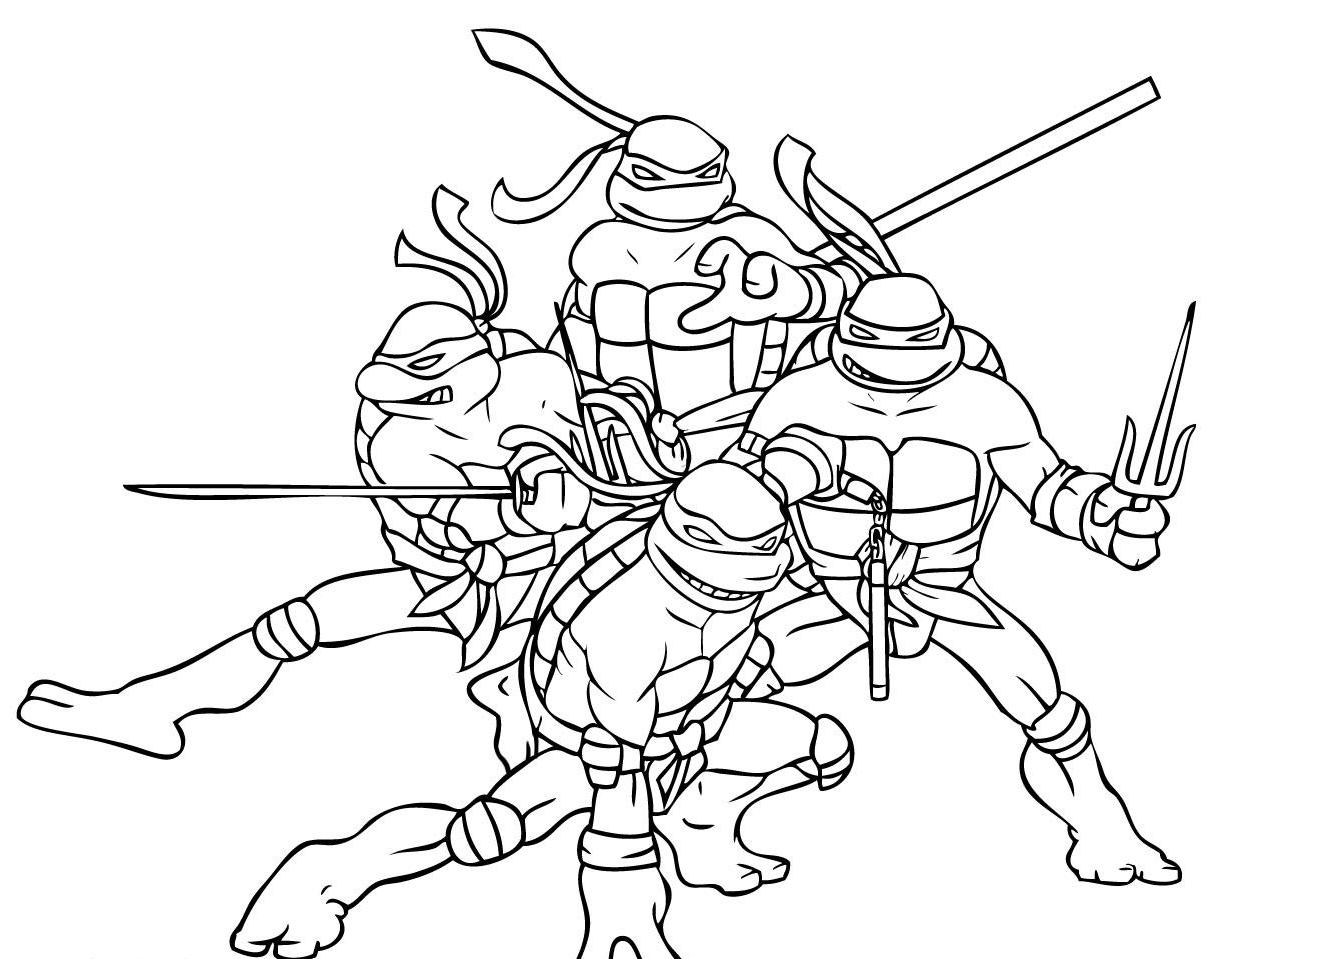 Donatello The Turtles Ninja Coloring Pages For Kids